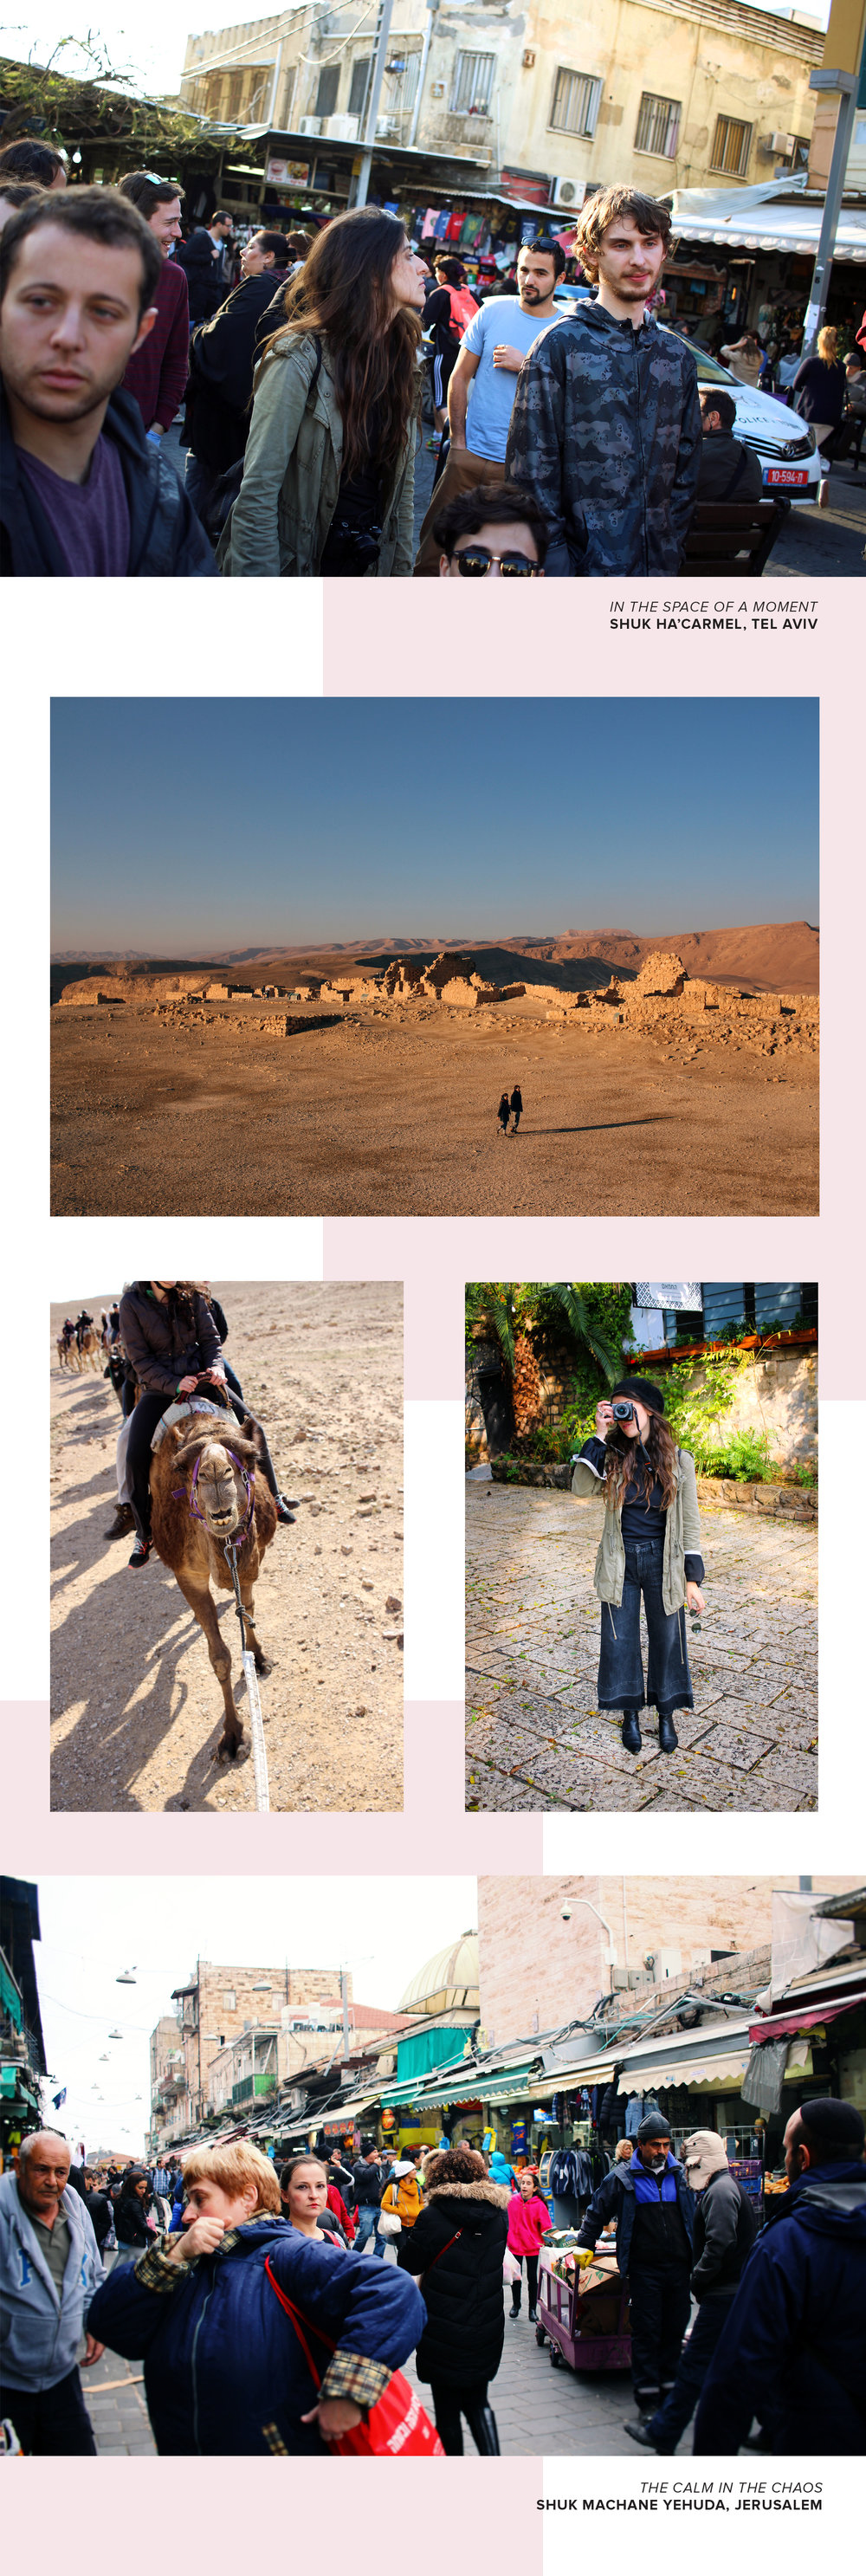 Travel photography by Geena Matuson @geenamatuson #thegirlmirage featuring Israel, with art book to follow. See more @ https://thegirlmirage.com.